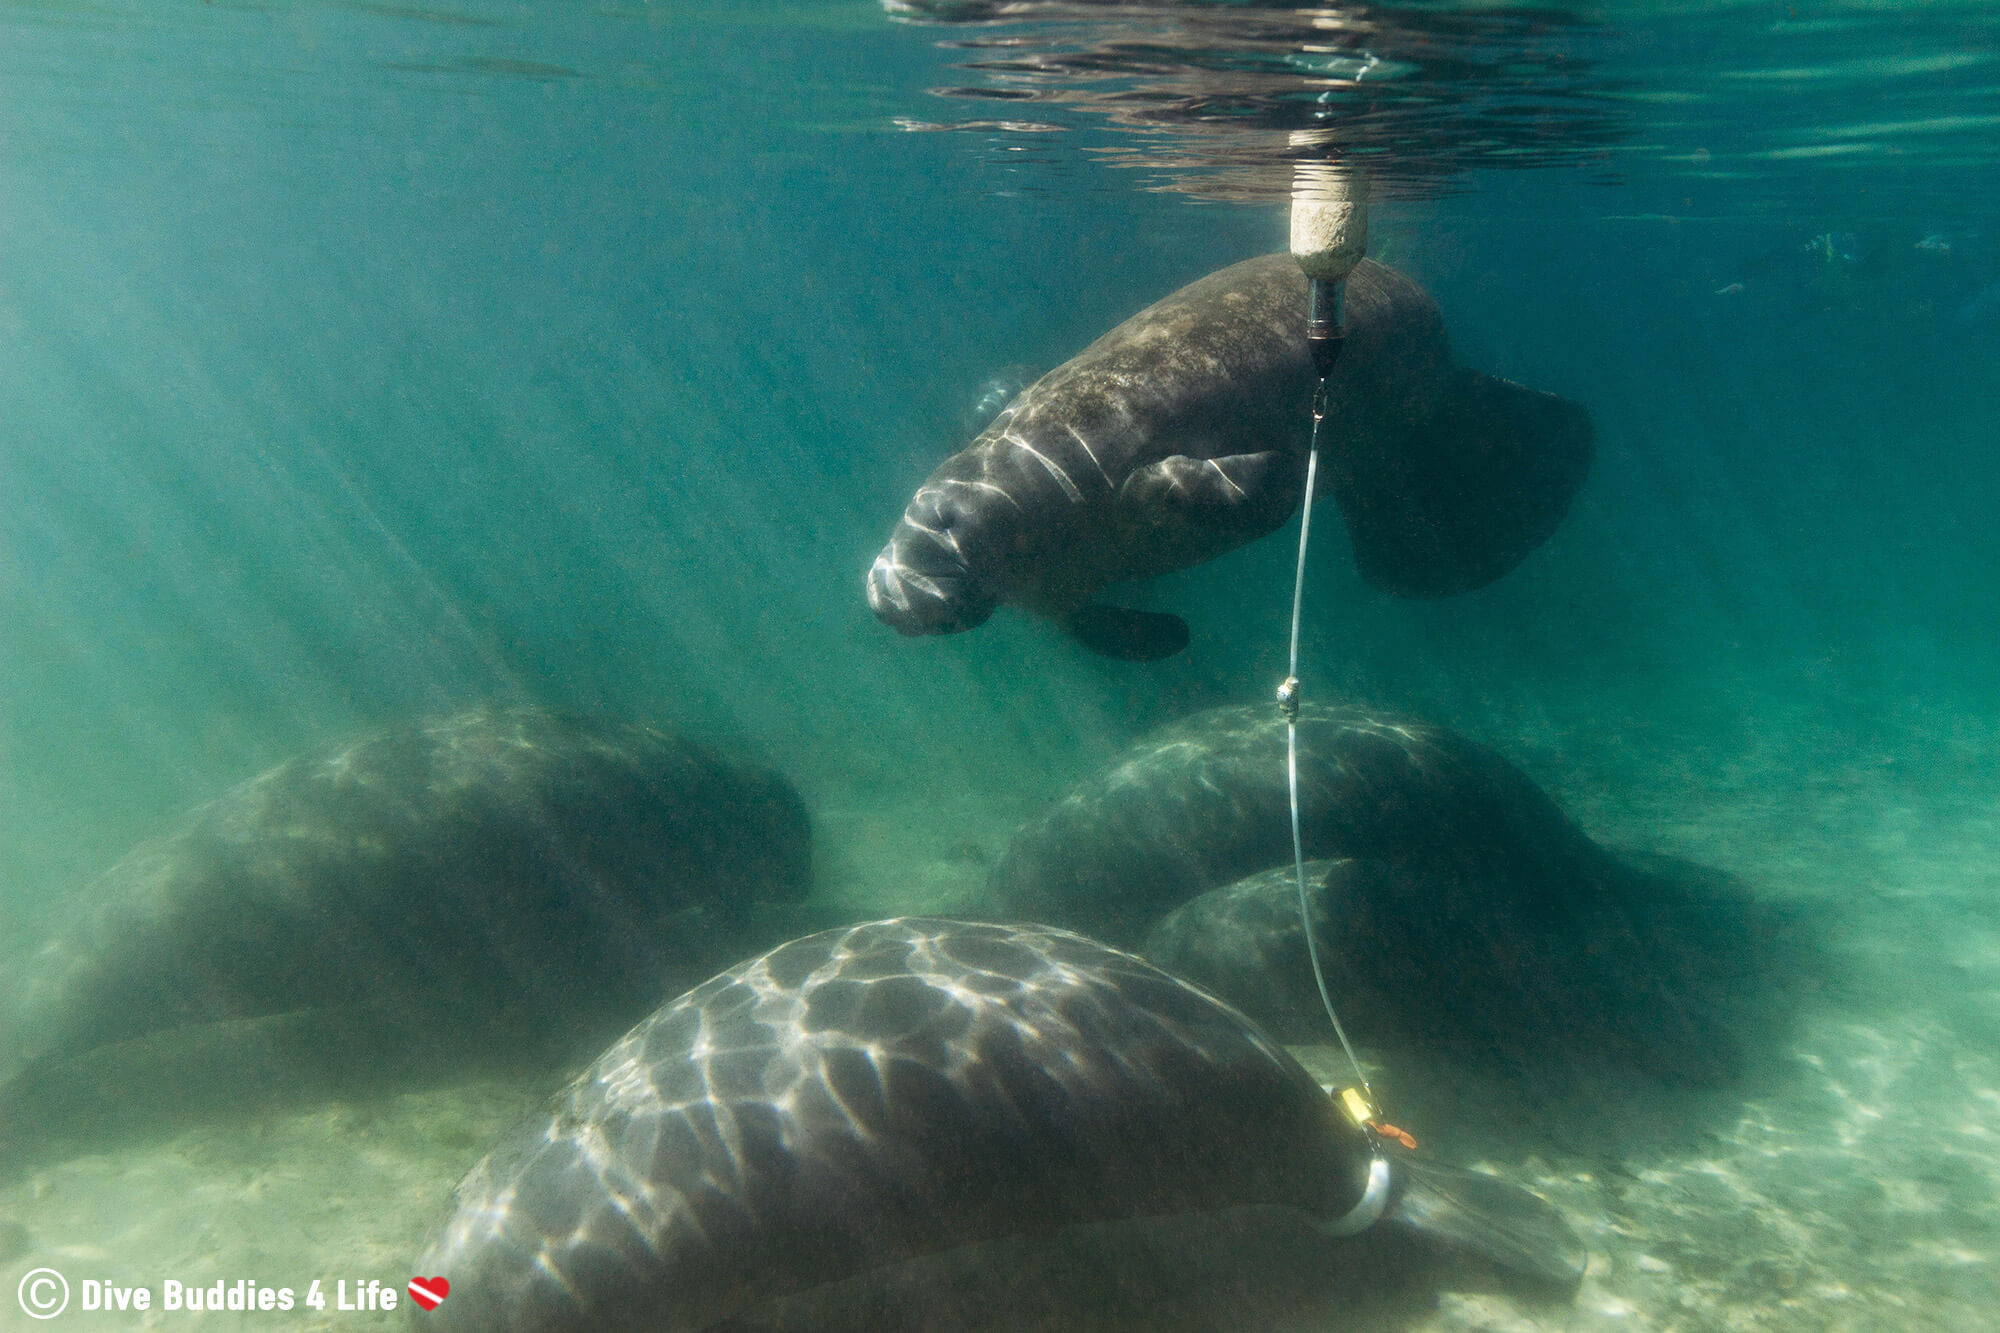 A Baby Manatee Surfacing For Air In Three Sisters Spring, Crystal River, Florida, USA